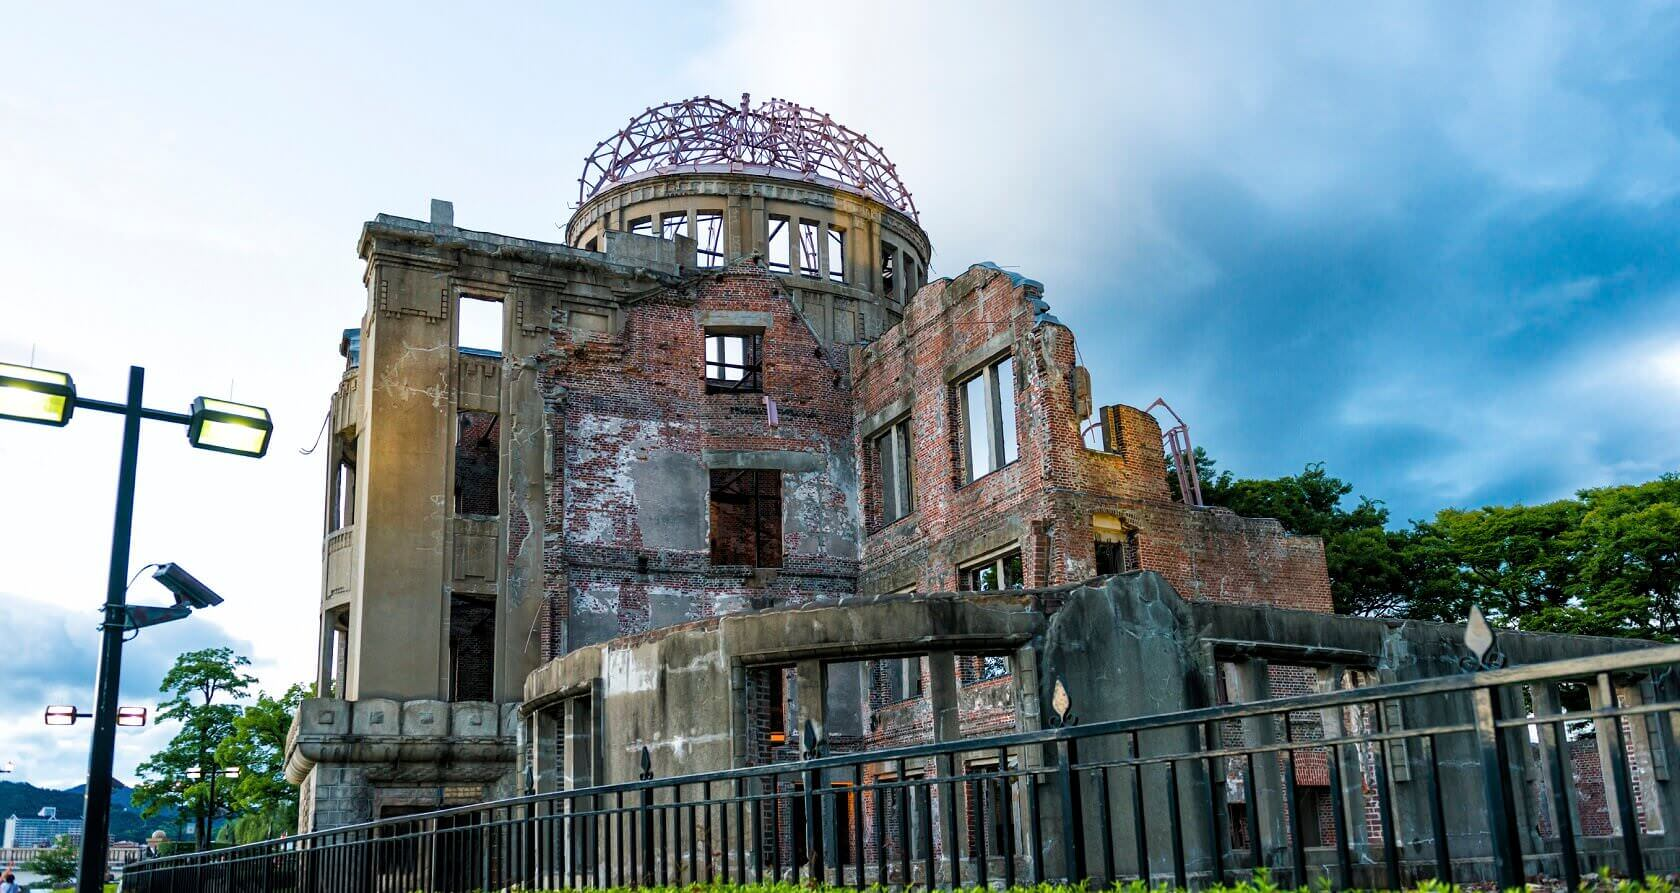 Hiroshima A-Bomb Dome Memorial